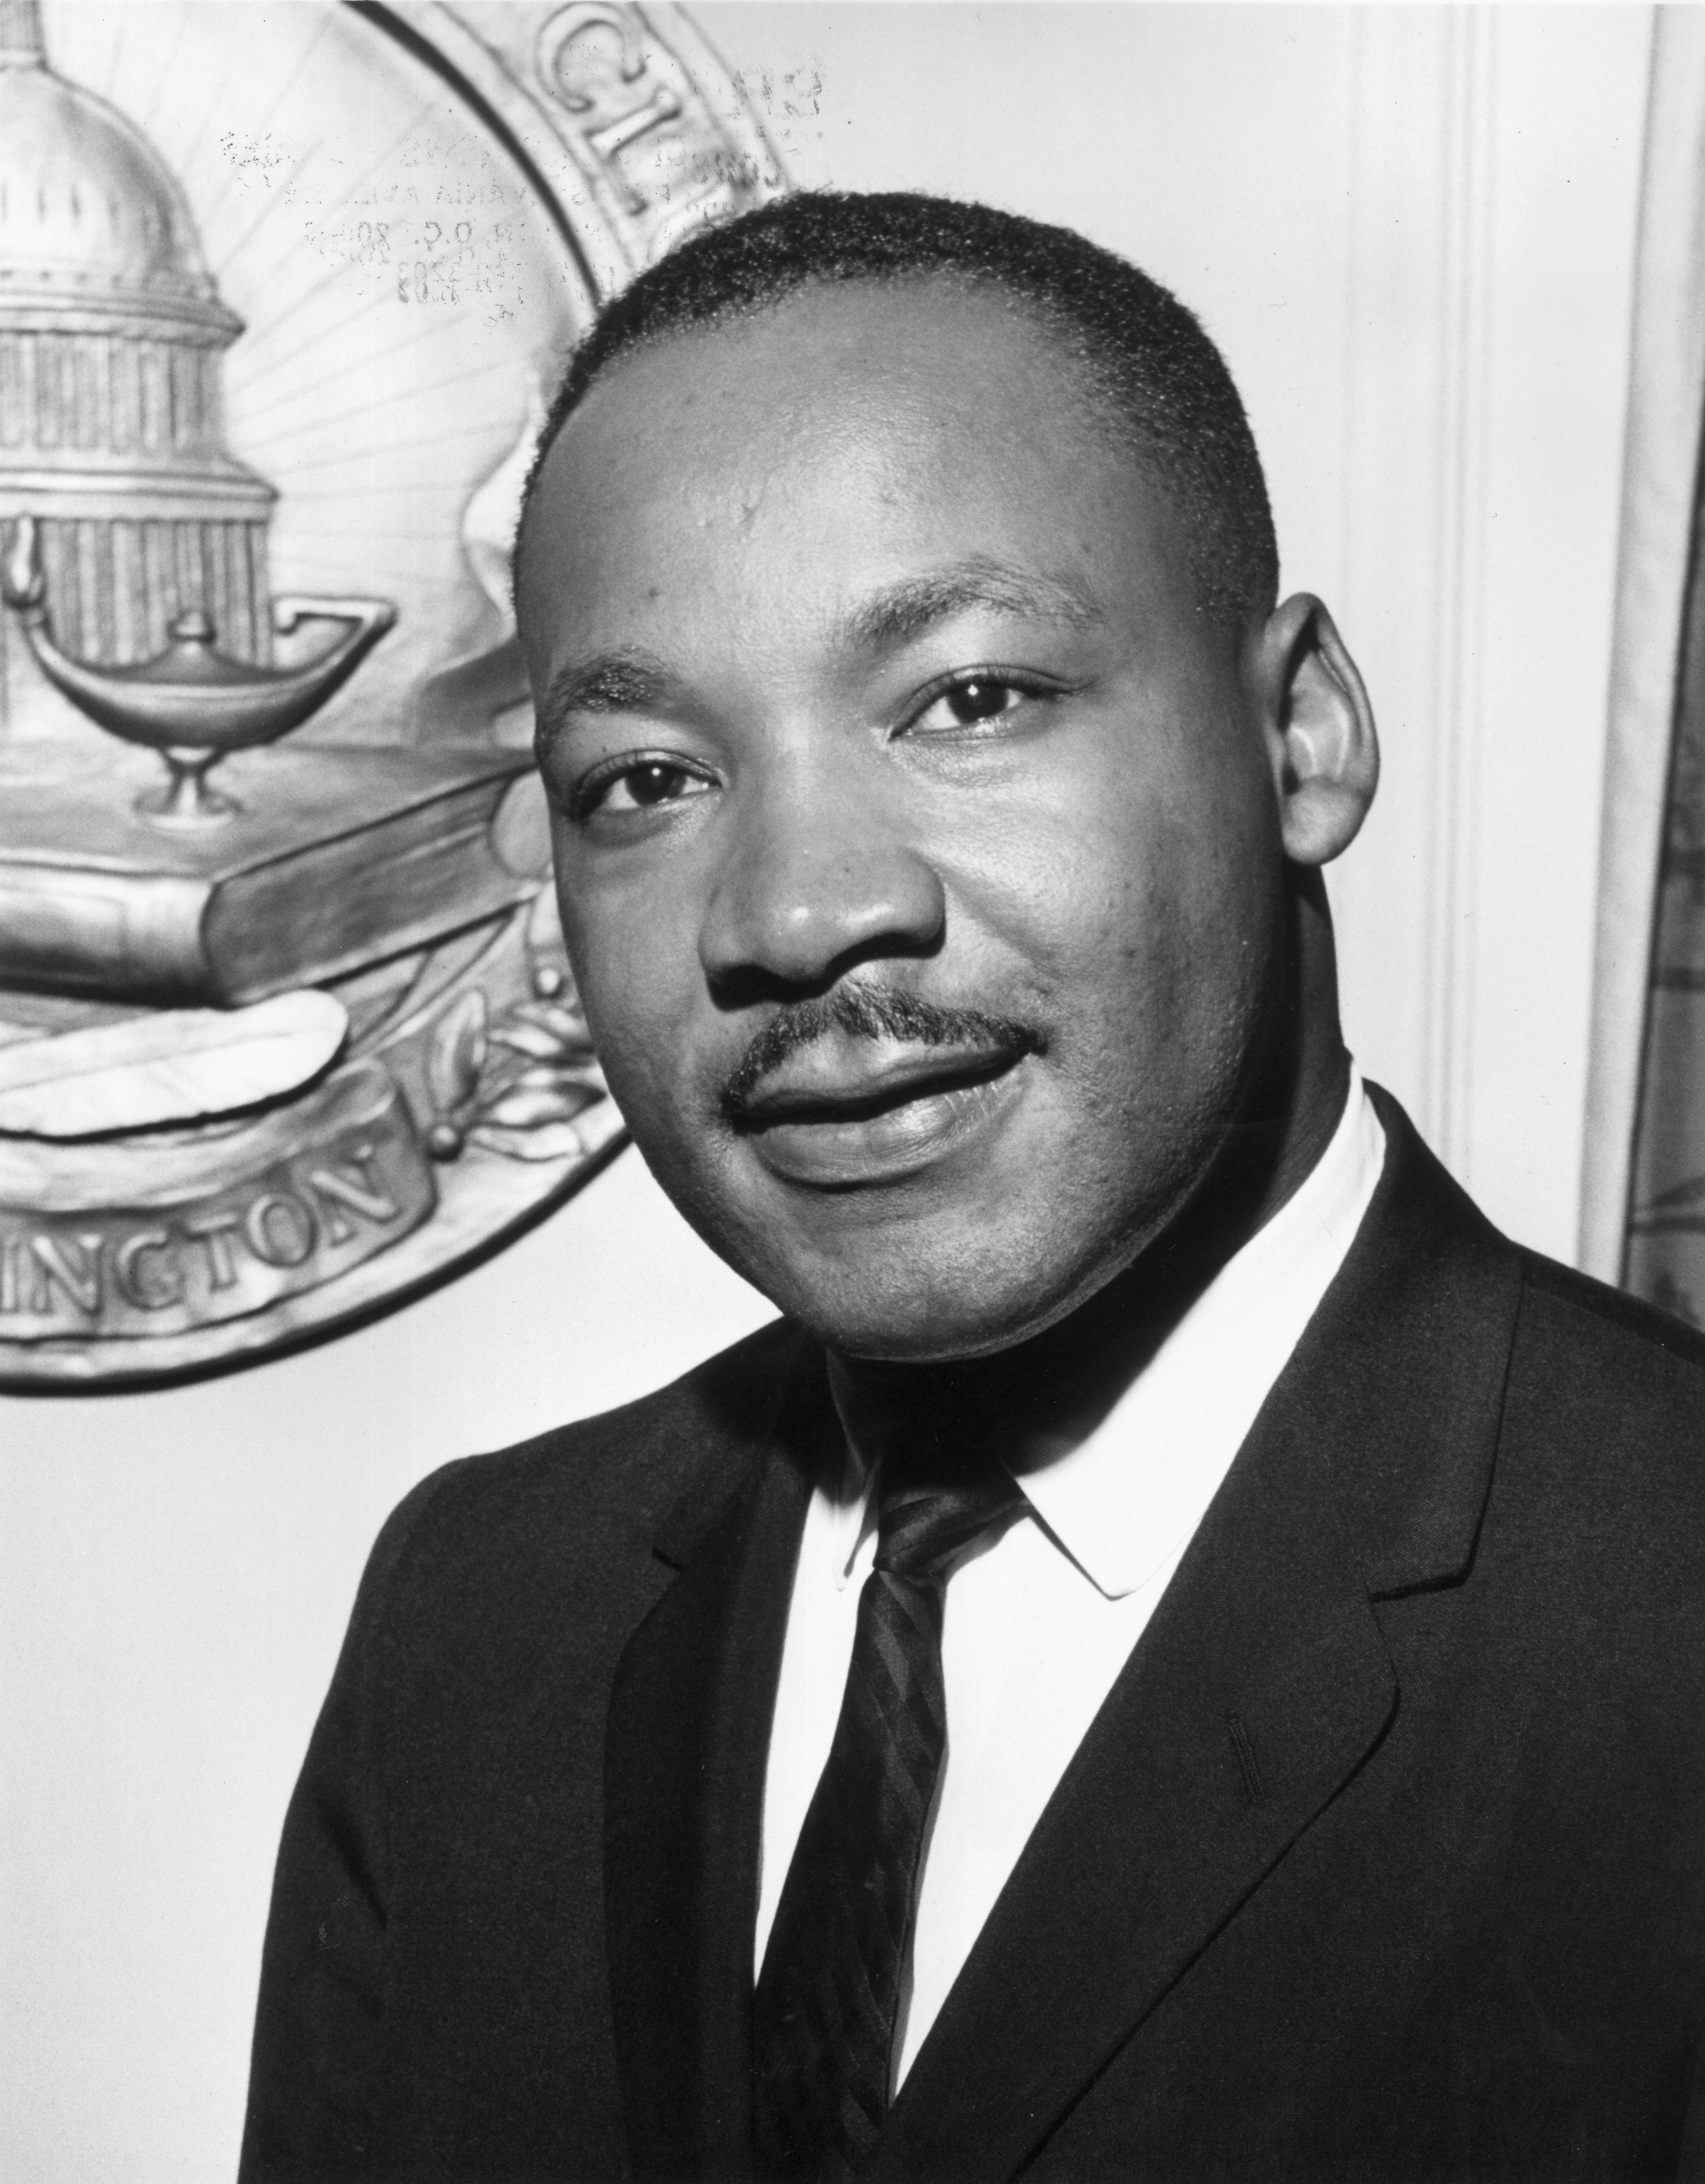 Dr. Martin Luther King Jr.'s Life and Accomplishments